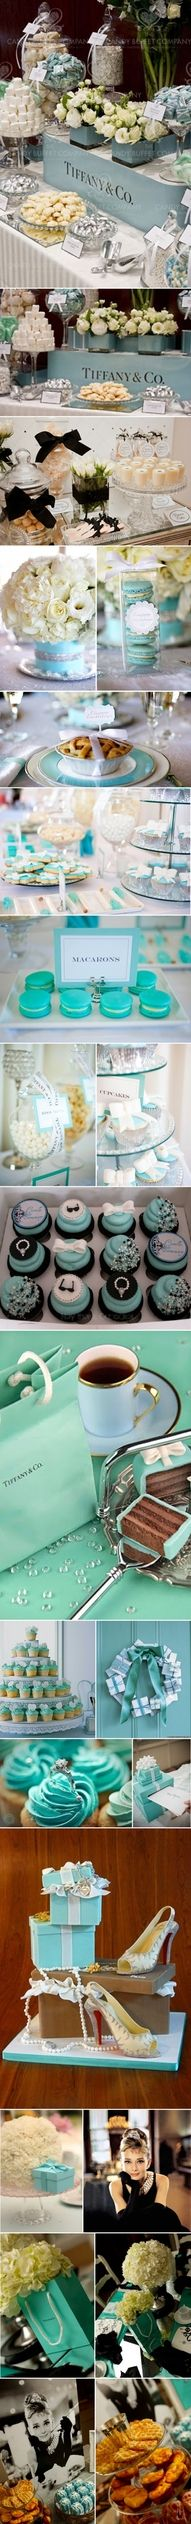 Tiffany! Would be nice to make the boxes in a cake form and put an engagement ring in the top one-just a thought.